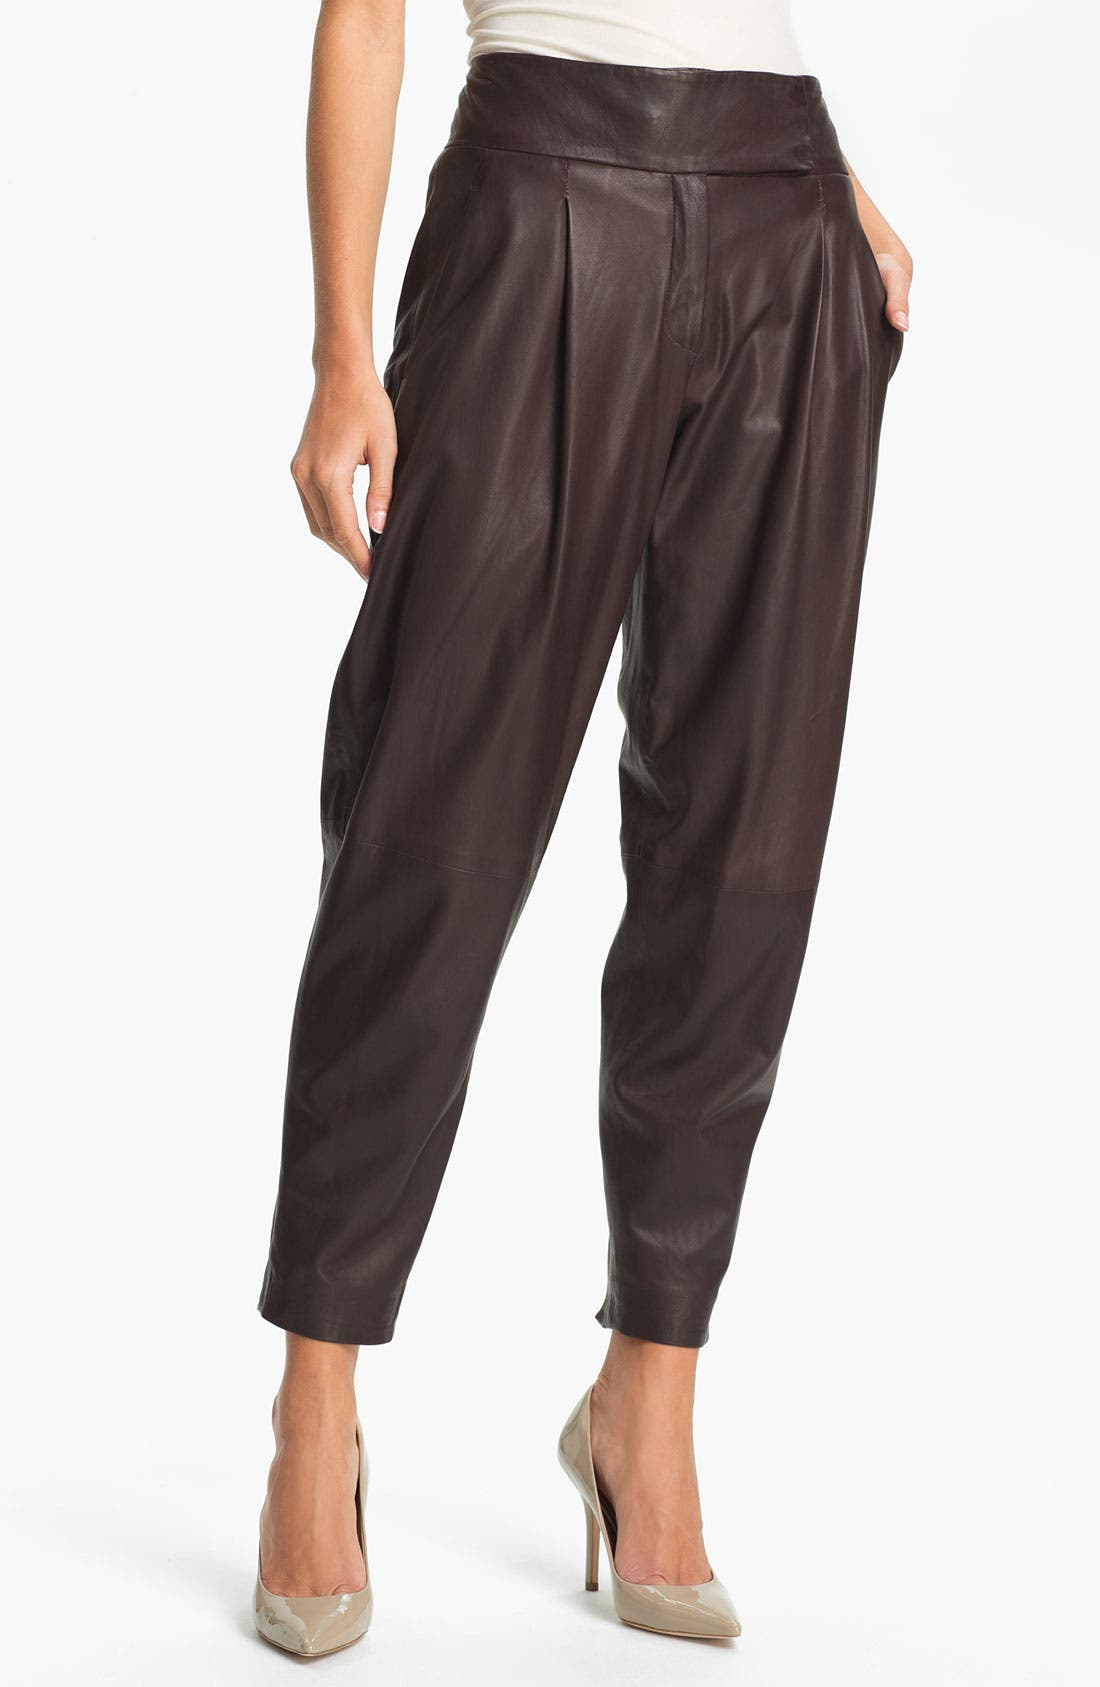 Alternate Image 1 Selected - Theory 'Kina L.' Tapered Leather Pants